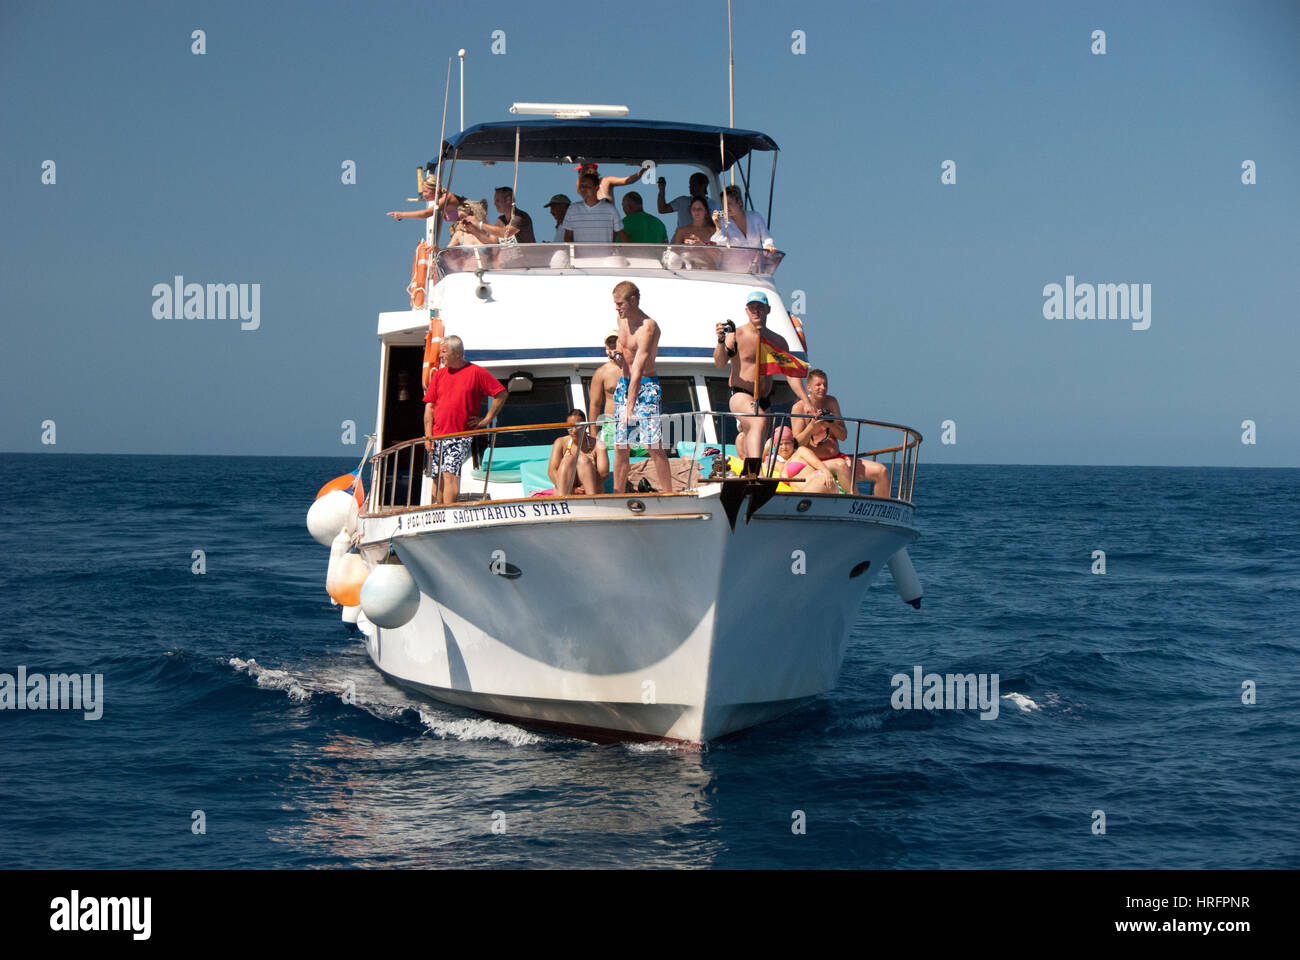 Whale and Dolphin Spotting Trip - Stock Image